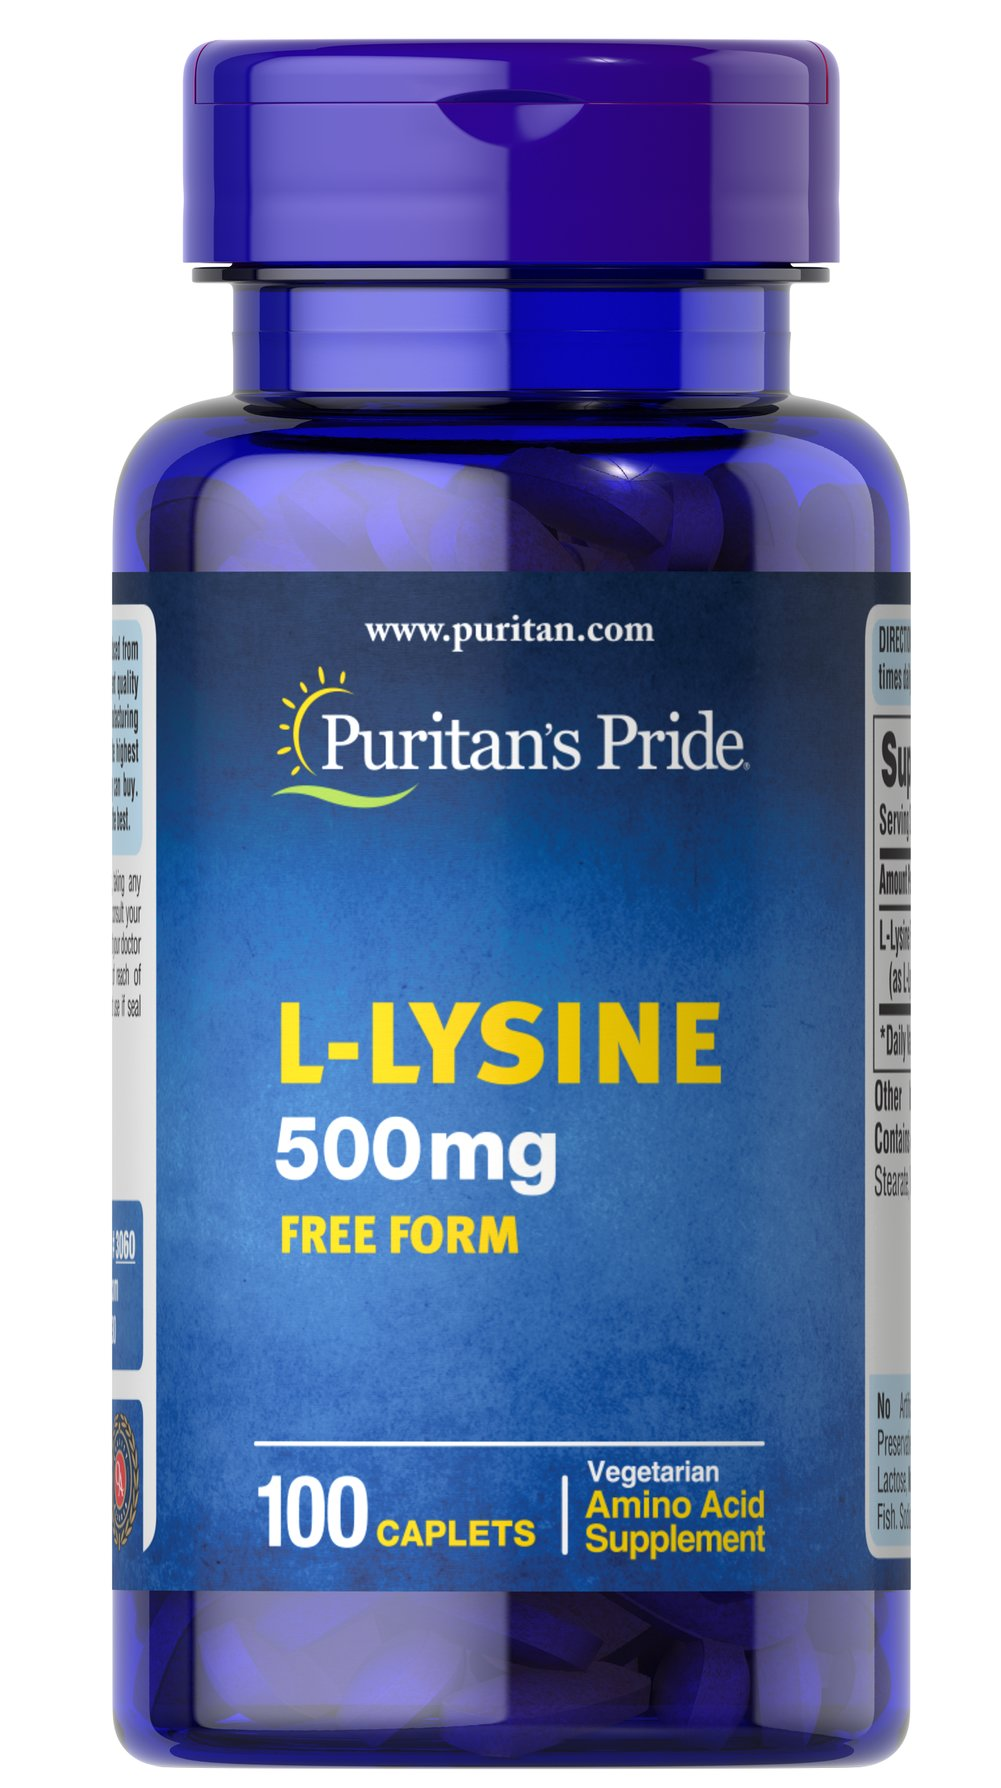 L-Lysine 500 mg <p>For Balanced Nutrition and Health**</p><p>Lysine is an indispensable amino acid that cannot be made by the body.** Amino acids form the basis for protein, which helps construct and maintain the critical structures in the body.** Lysine is also used for the health and integrity of skin.**</p> 100 Caplets 500 mg $5.99